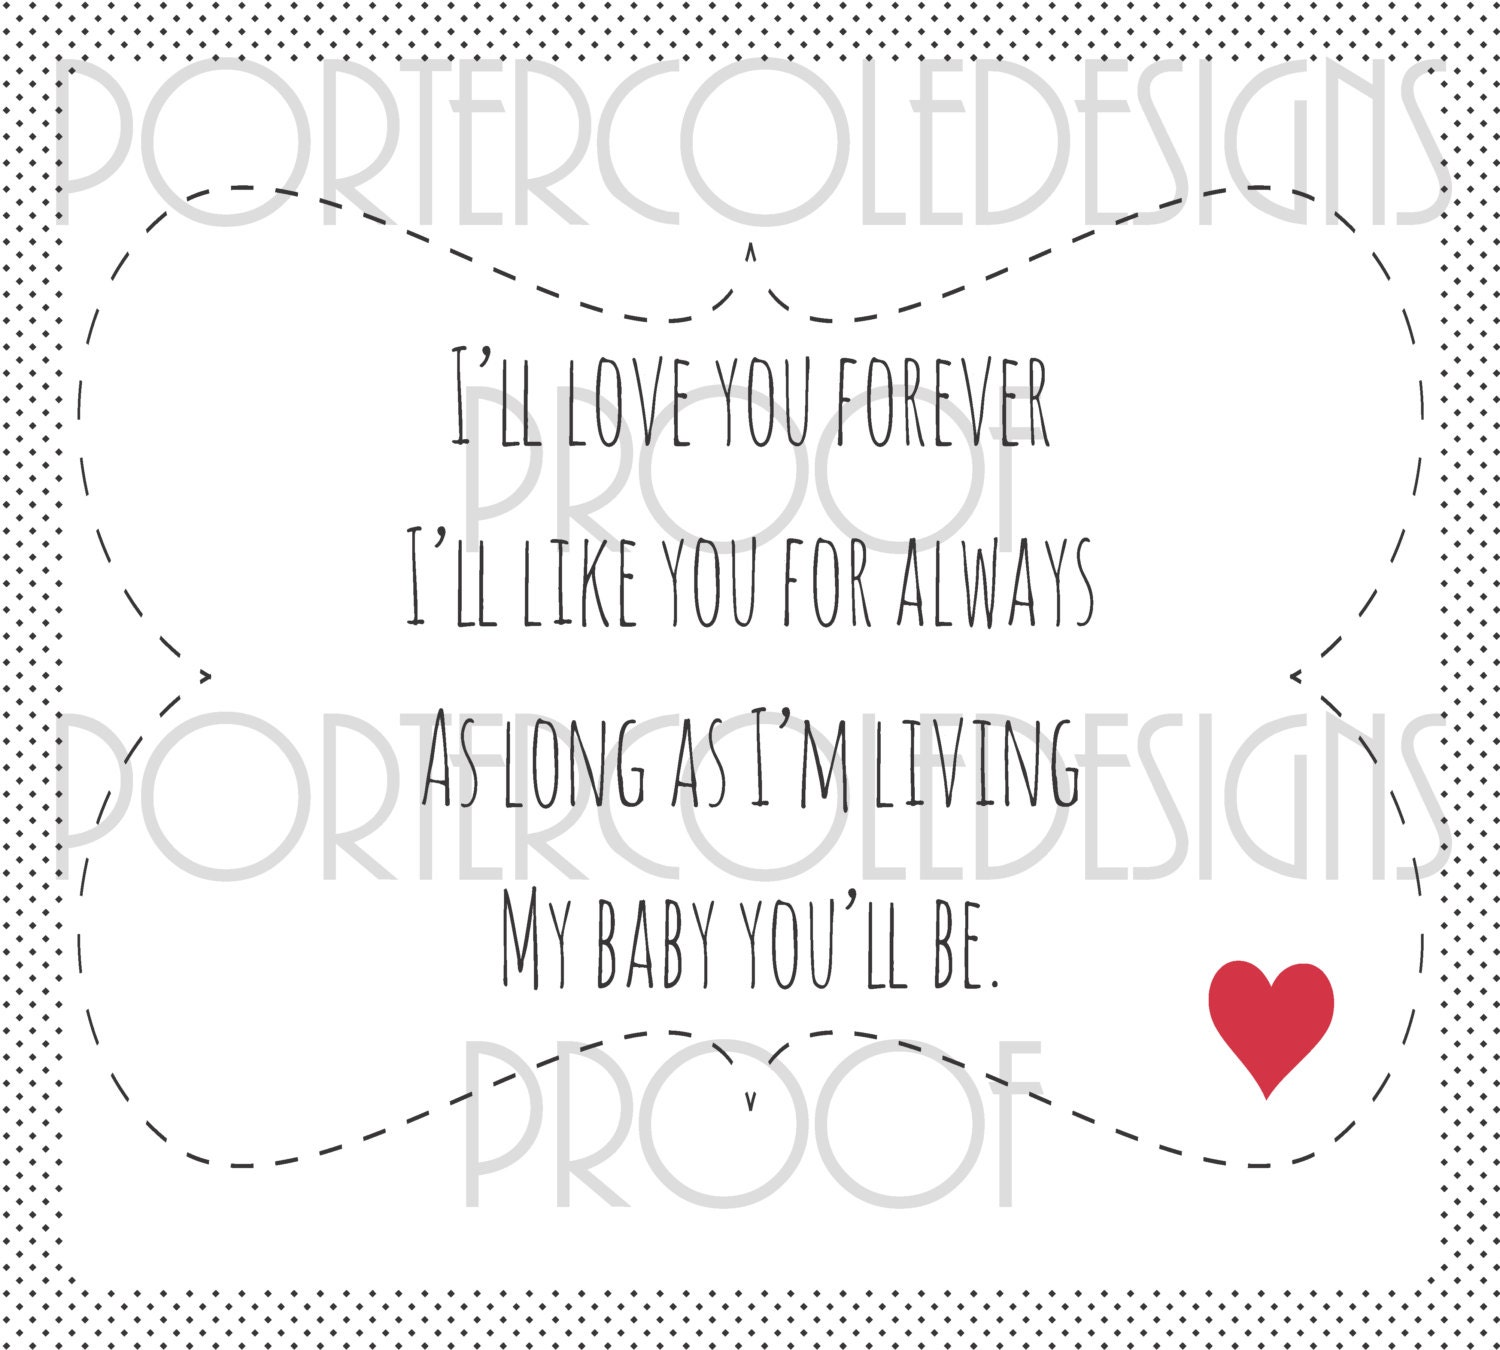 I Ll Love You Forever Quote: 18x20 I'll Love You Forever Children's Book Quote Wall